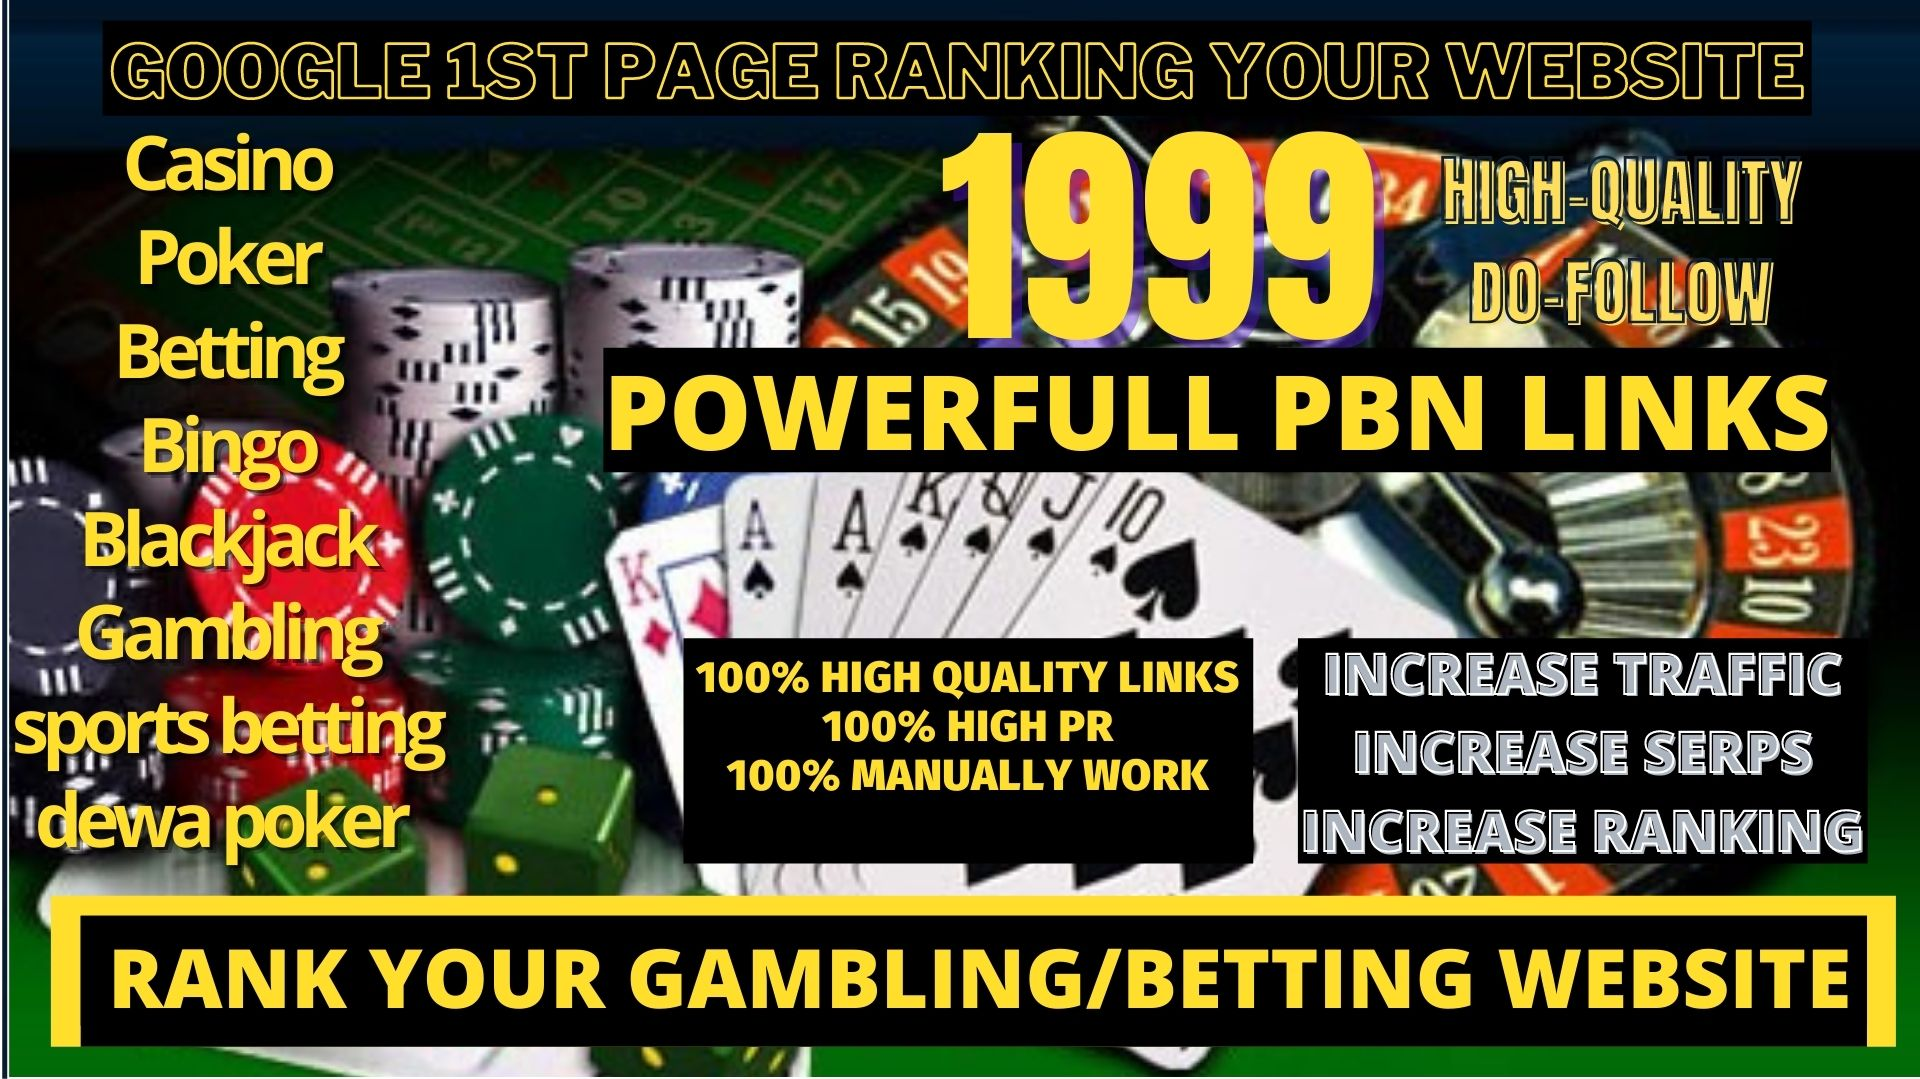 1999+Parmanent CASINO/POKER/Gambling/Sports Betting/judi bola related unique site